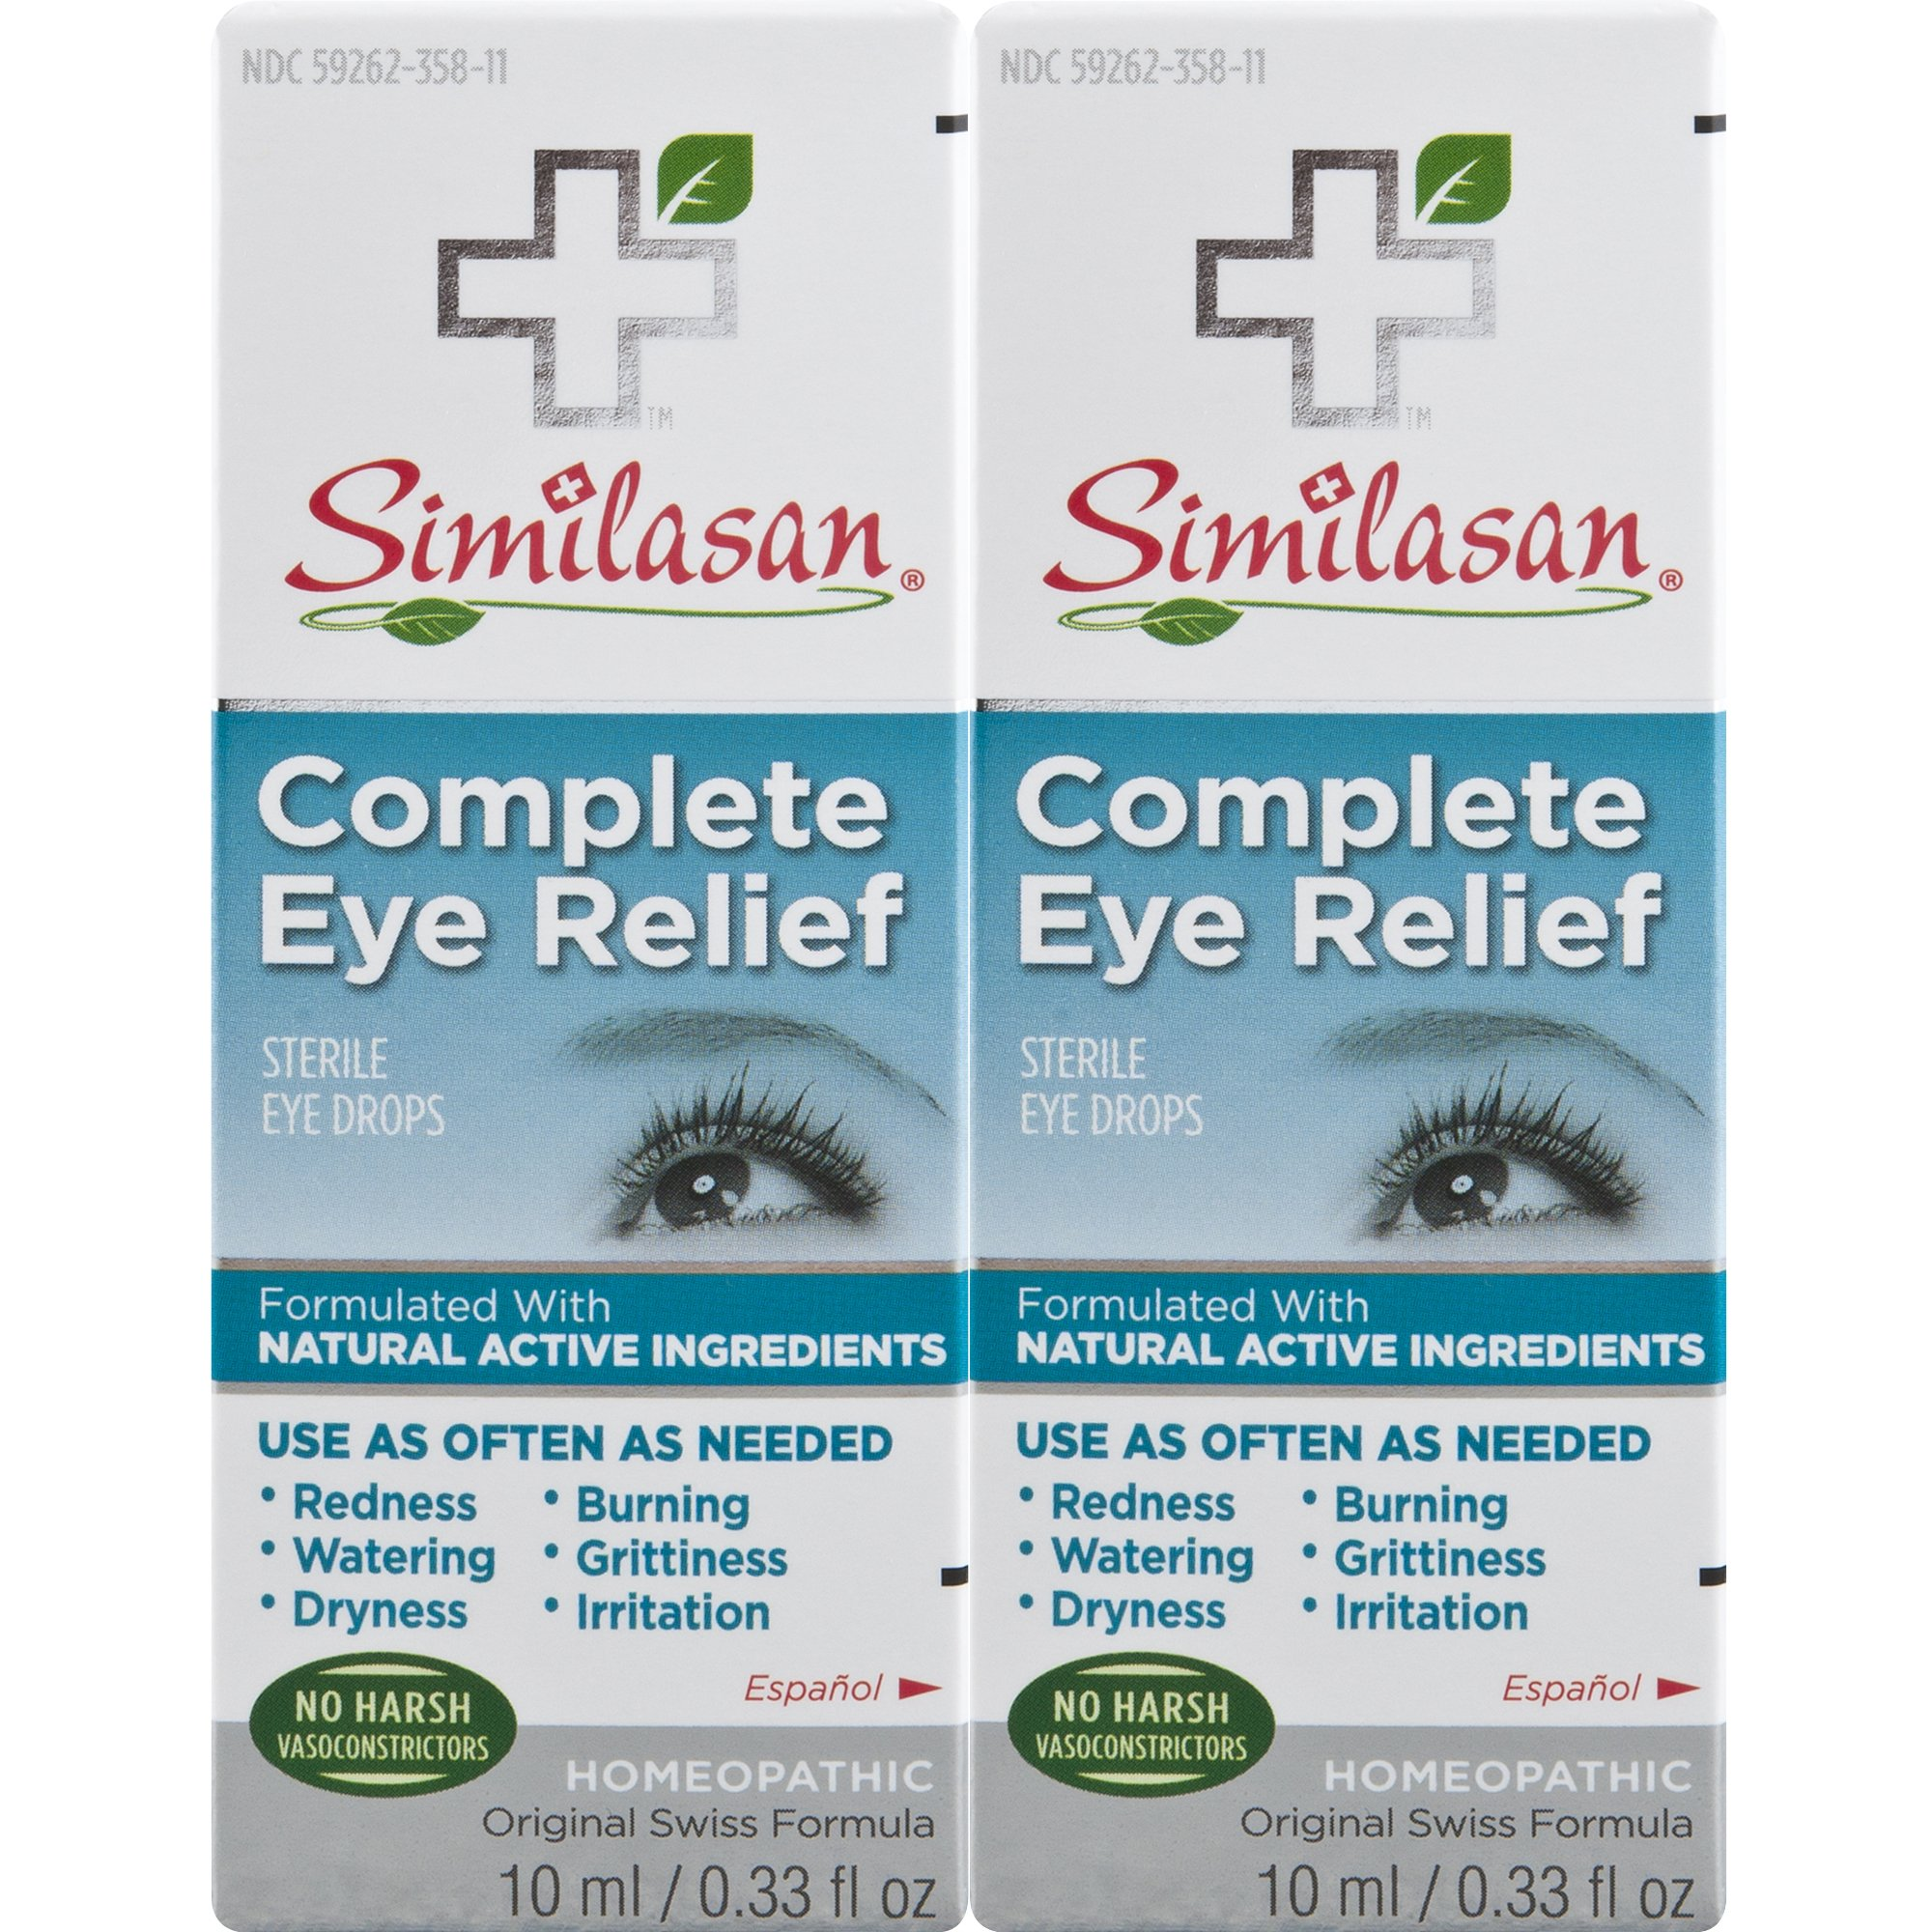 Similasan Complete Eye Relief Eye Drops Bottle, for Temporary Relief from Red Eyes, Dry Eyes, Burning Eyes, Watery Eyes, 0.33 Fl Oz (Pack of 2)